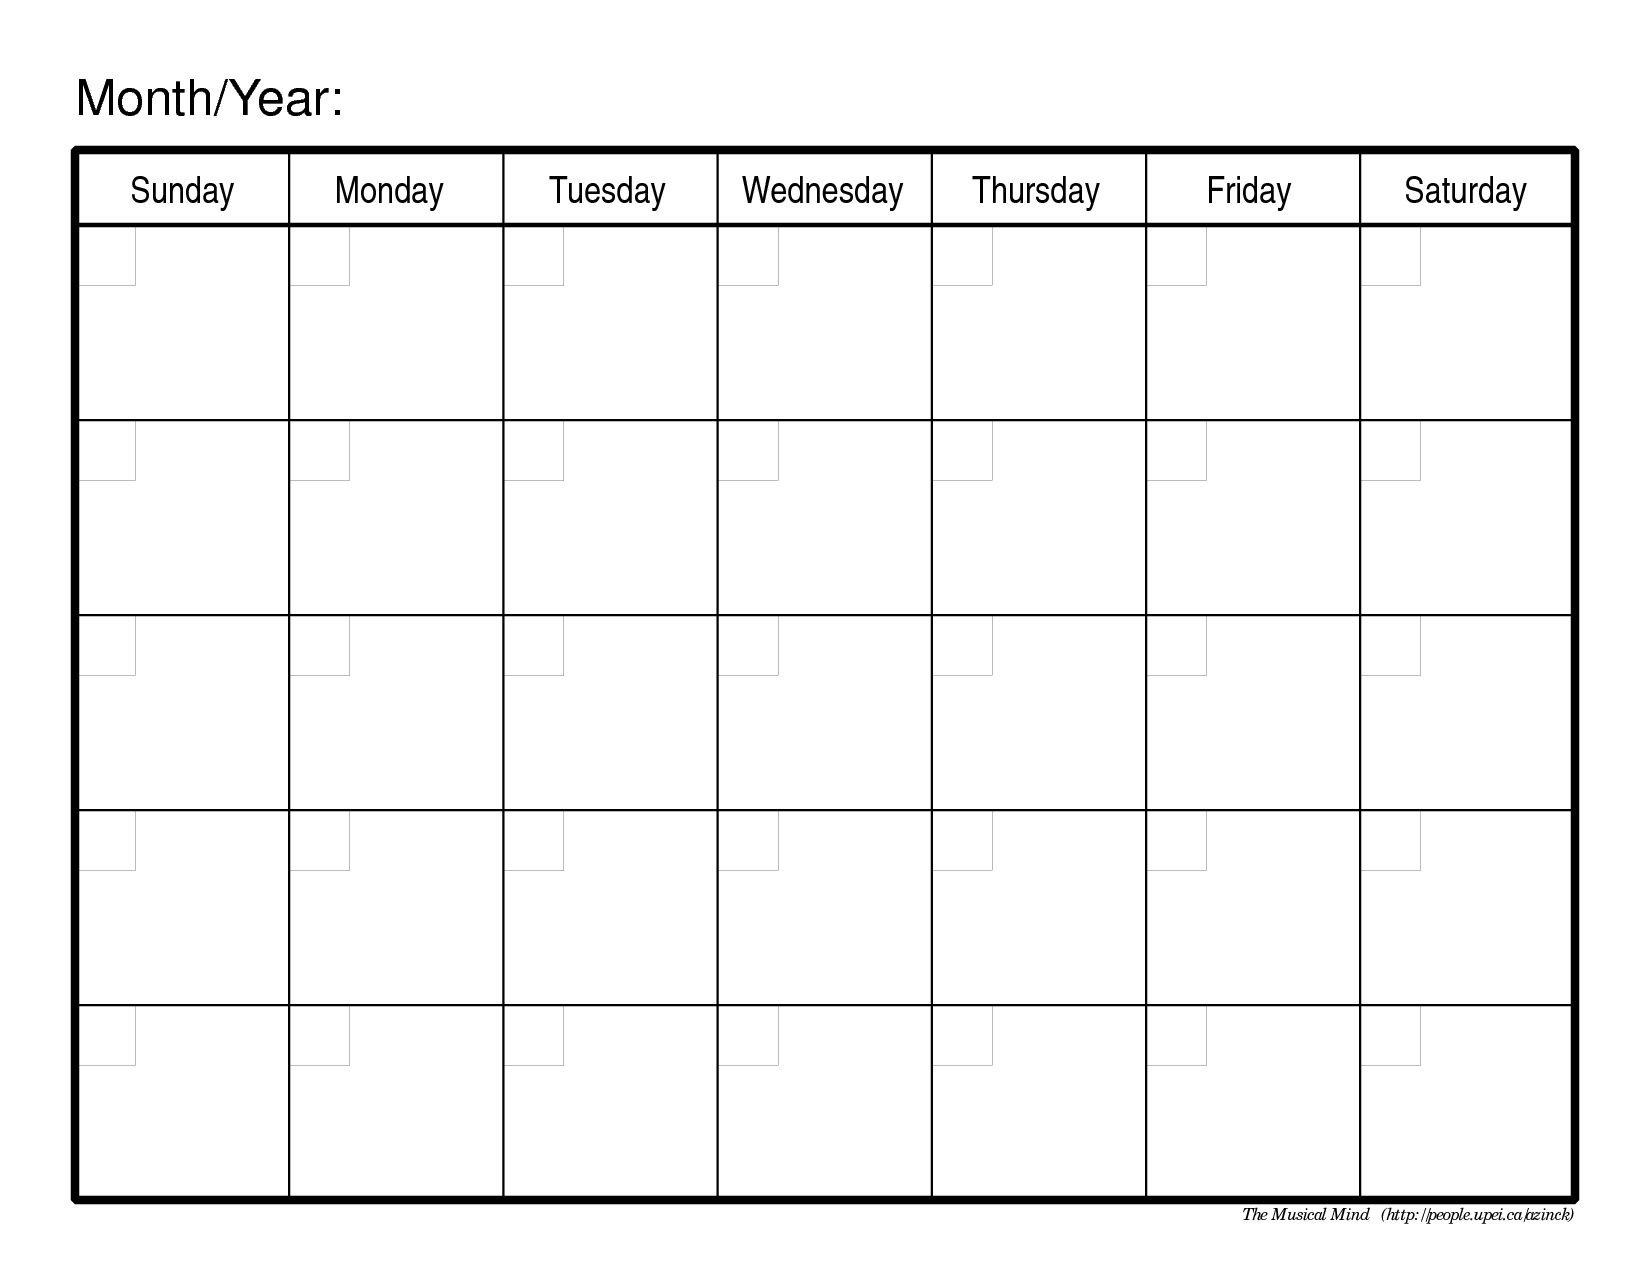 Blank Calendar Forms - Grude.interpretomics.co Make It Blank Calendar To Fill In